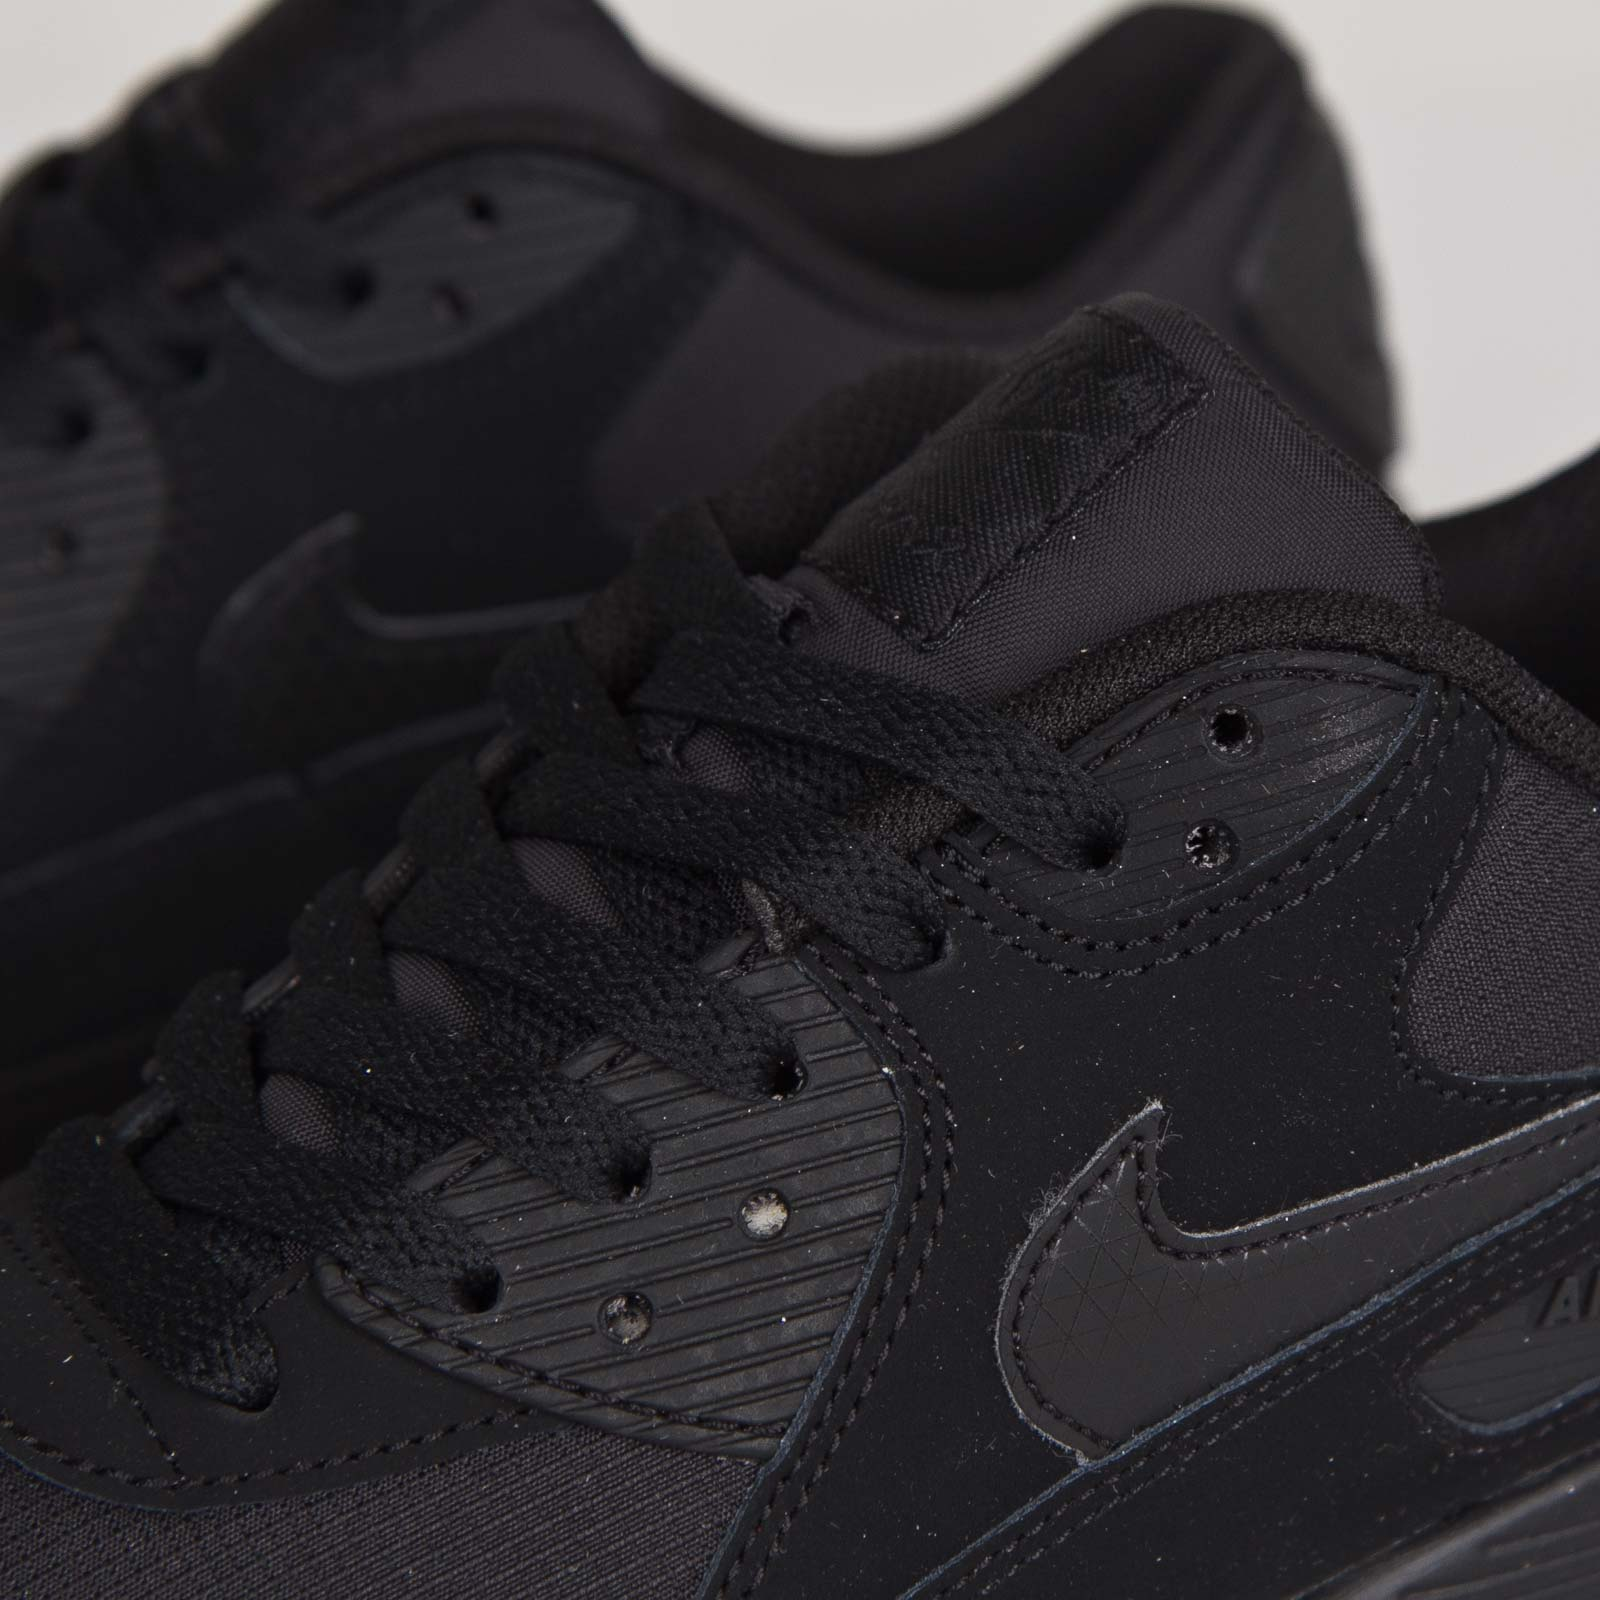 finest selection 9b734 e389a Nike Air Max 90 Essential - 537384-046 - Sneakersnstuff   sneakers   streetwear  online since 1999